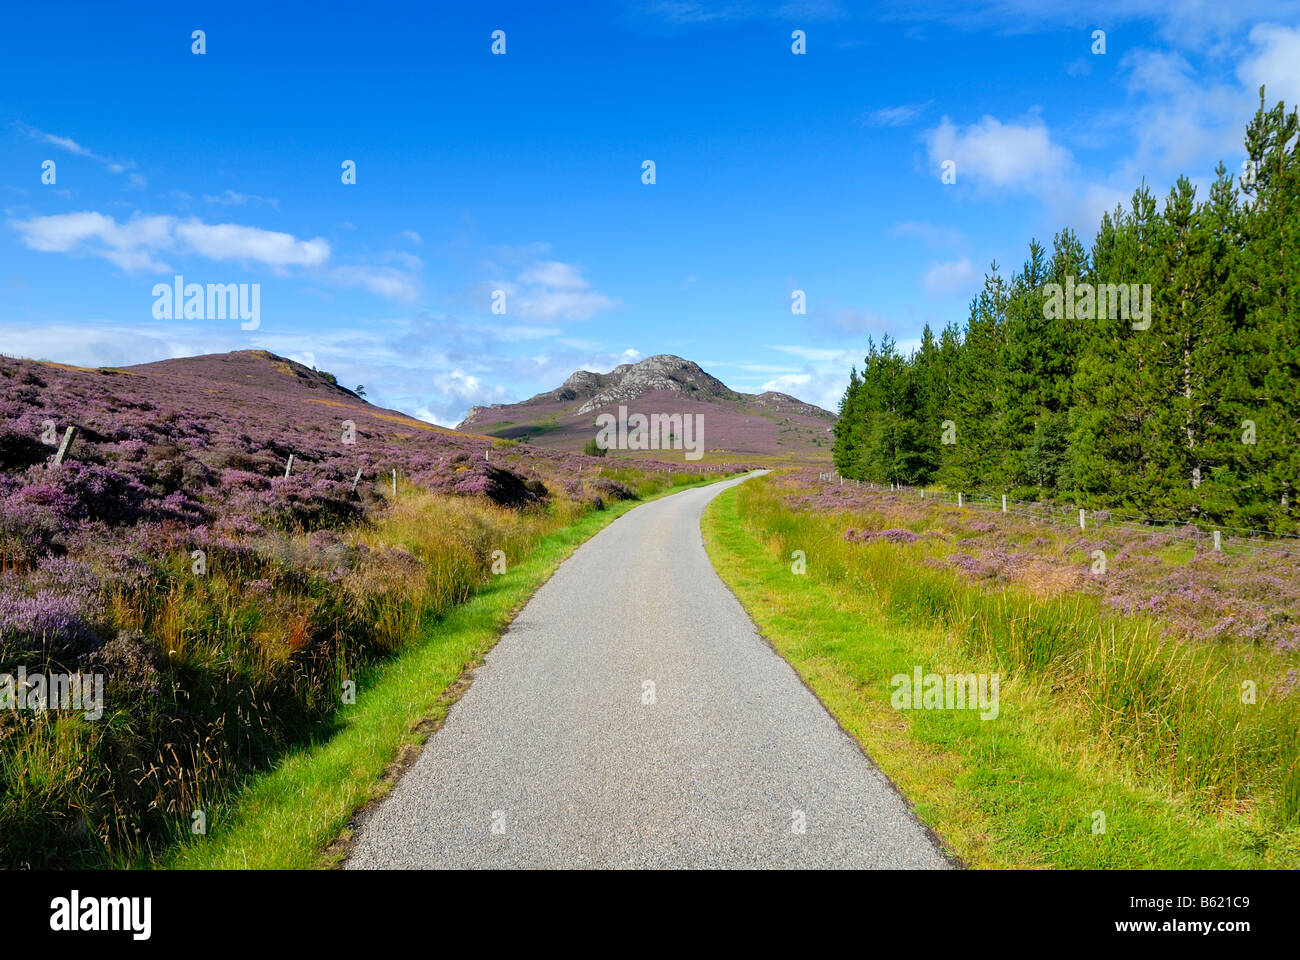 Single track road in the highlands, Scotland, Great Britain, Europe - Stock Image